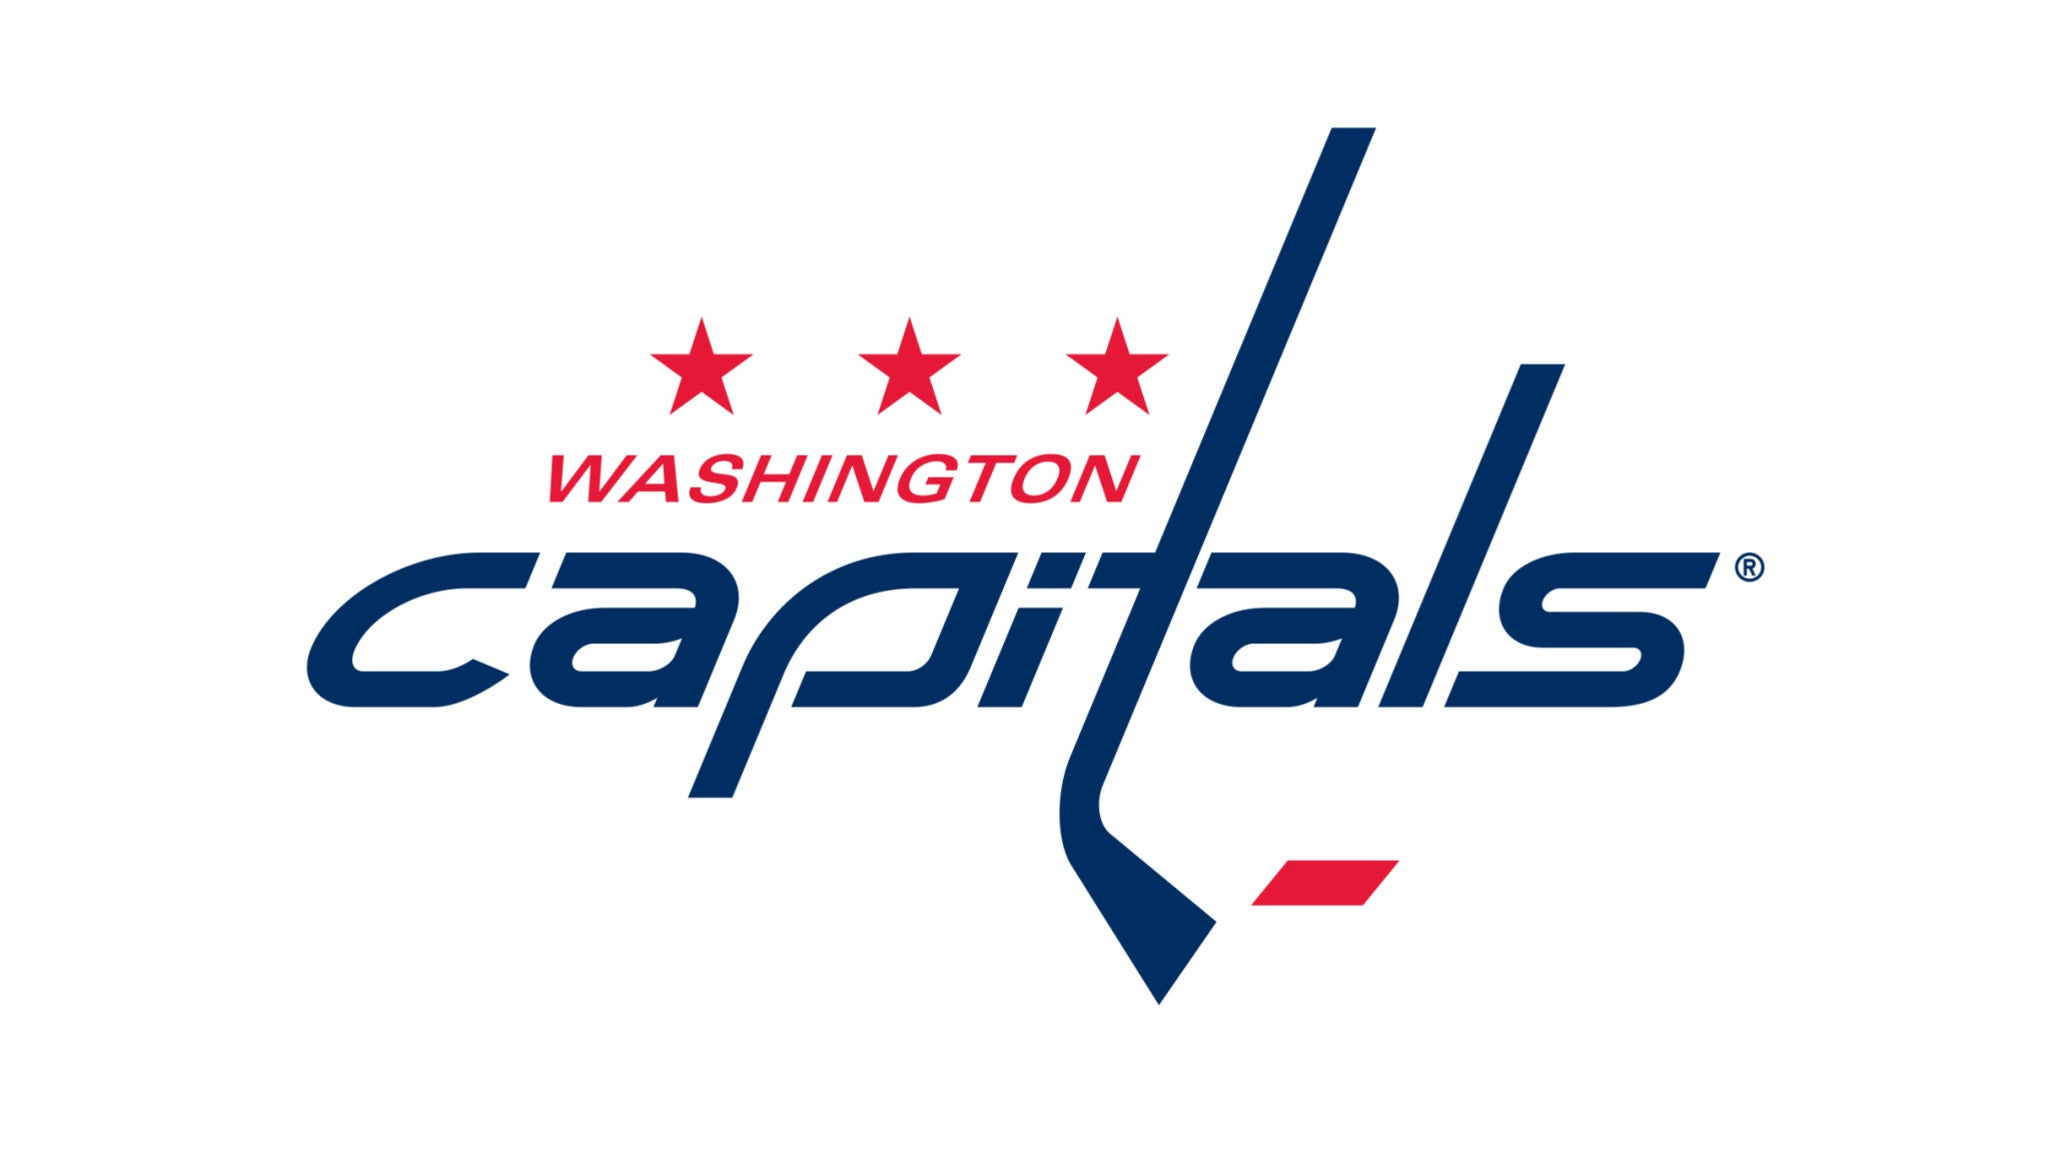 Washington Capitals vs. Buffalo Sabres at Capital One Arena